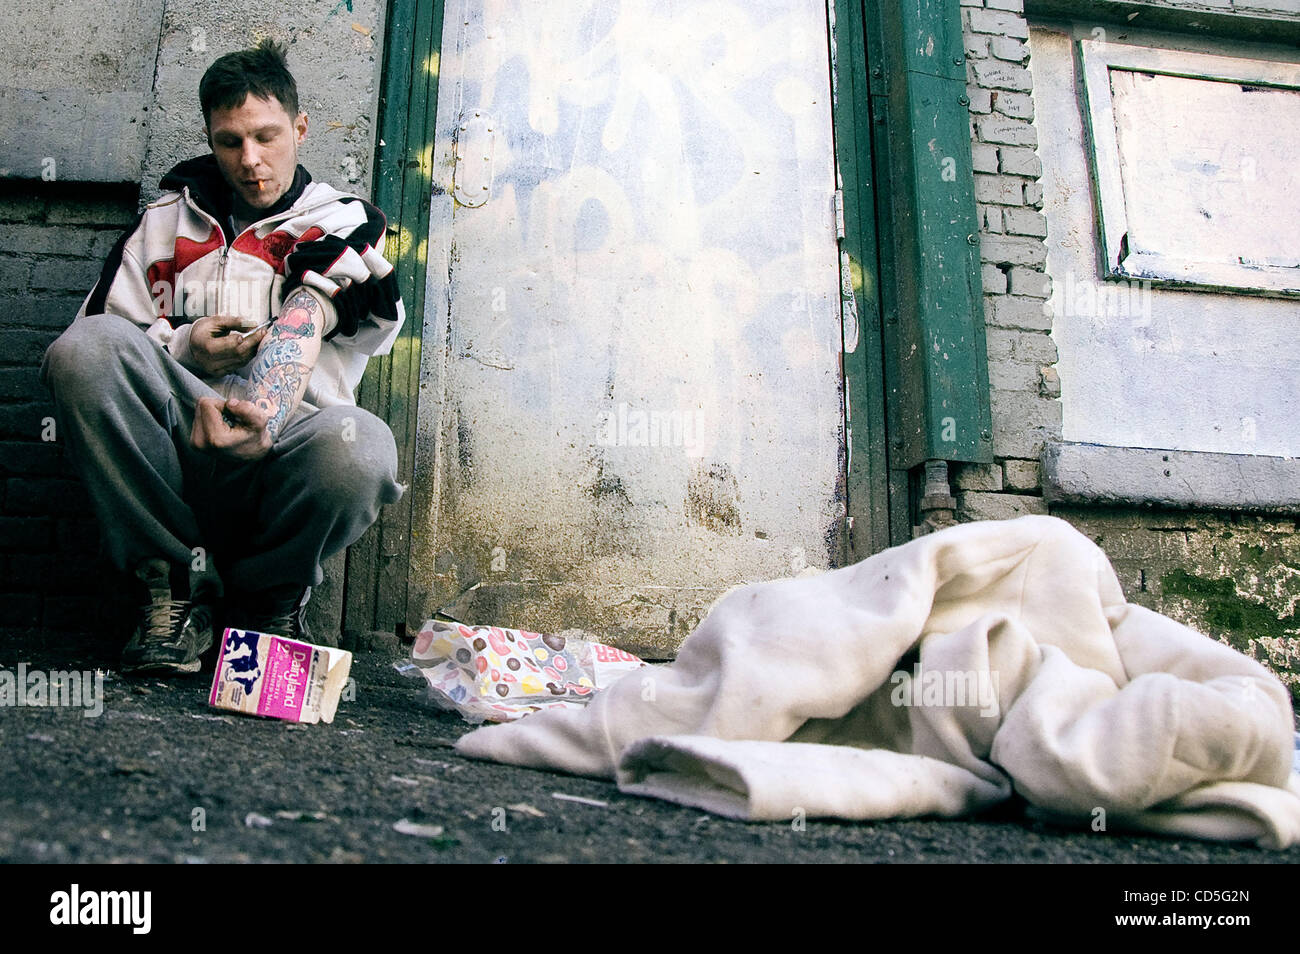 Jun 12, 2008 - Vancouver, British Columbia, Canada - Dope sick and broke, Phil 'gets better' in the alley - Stock Image